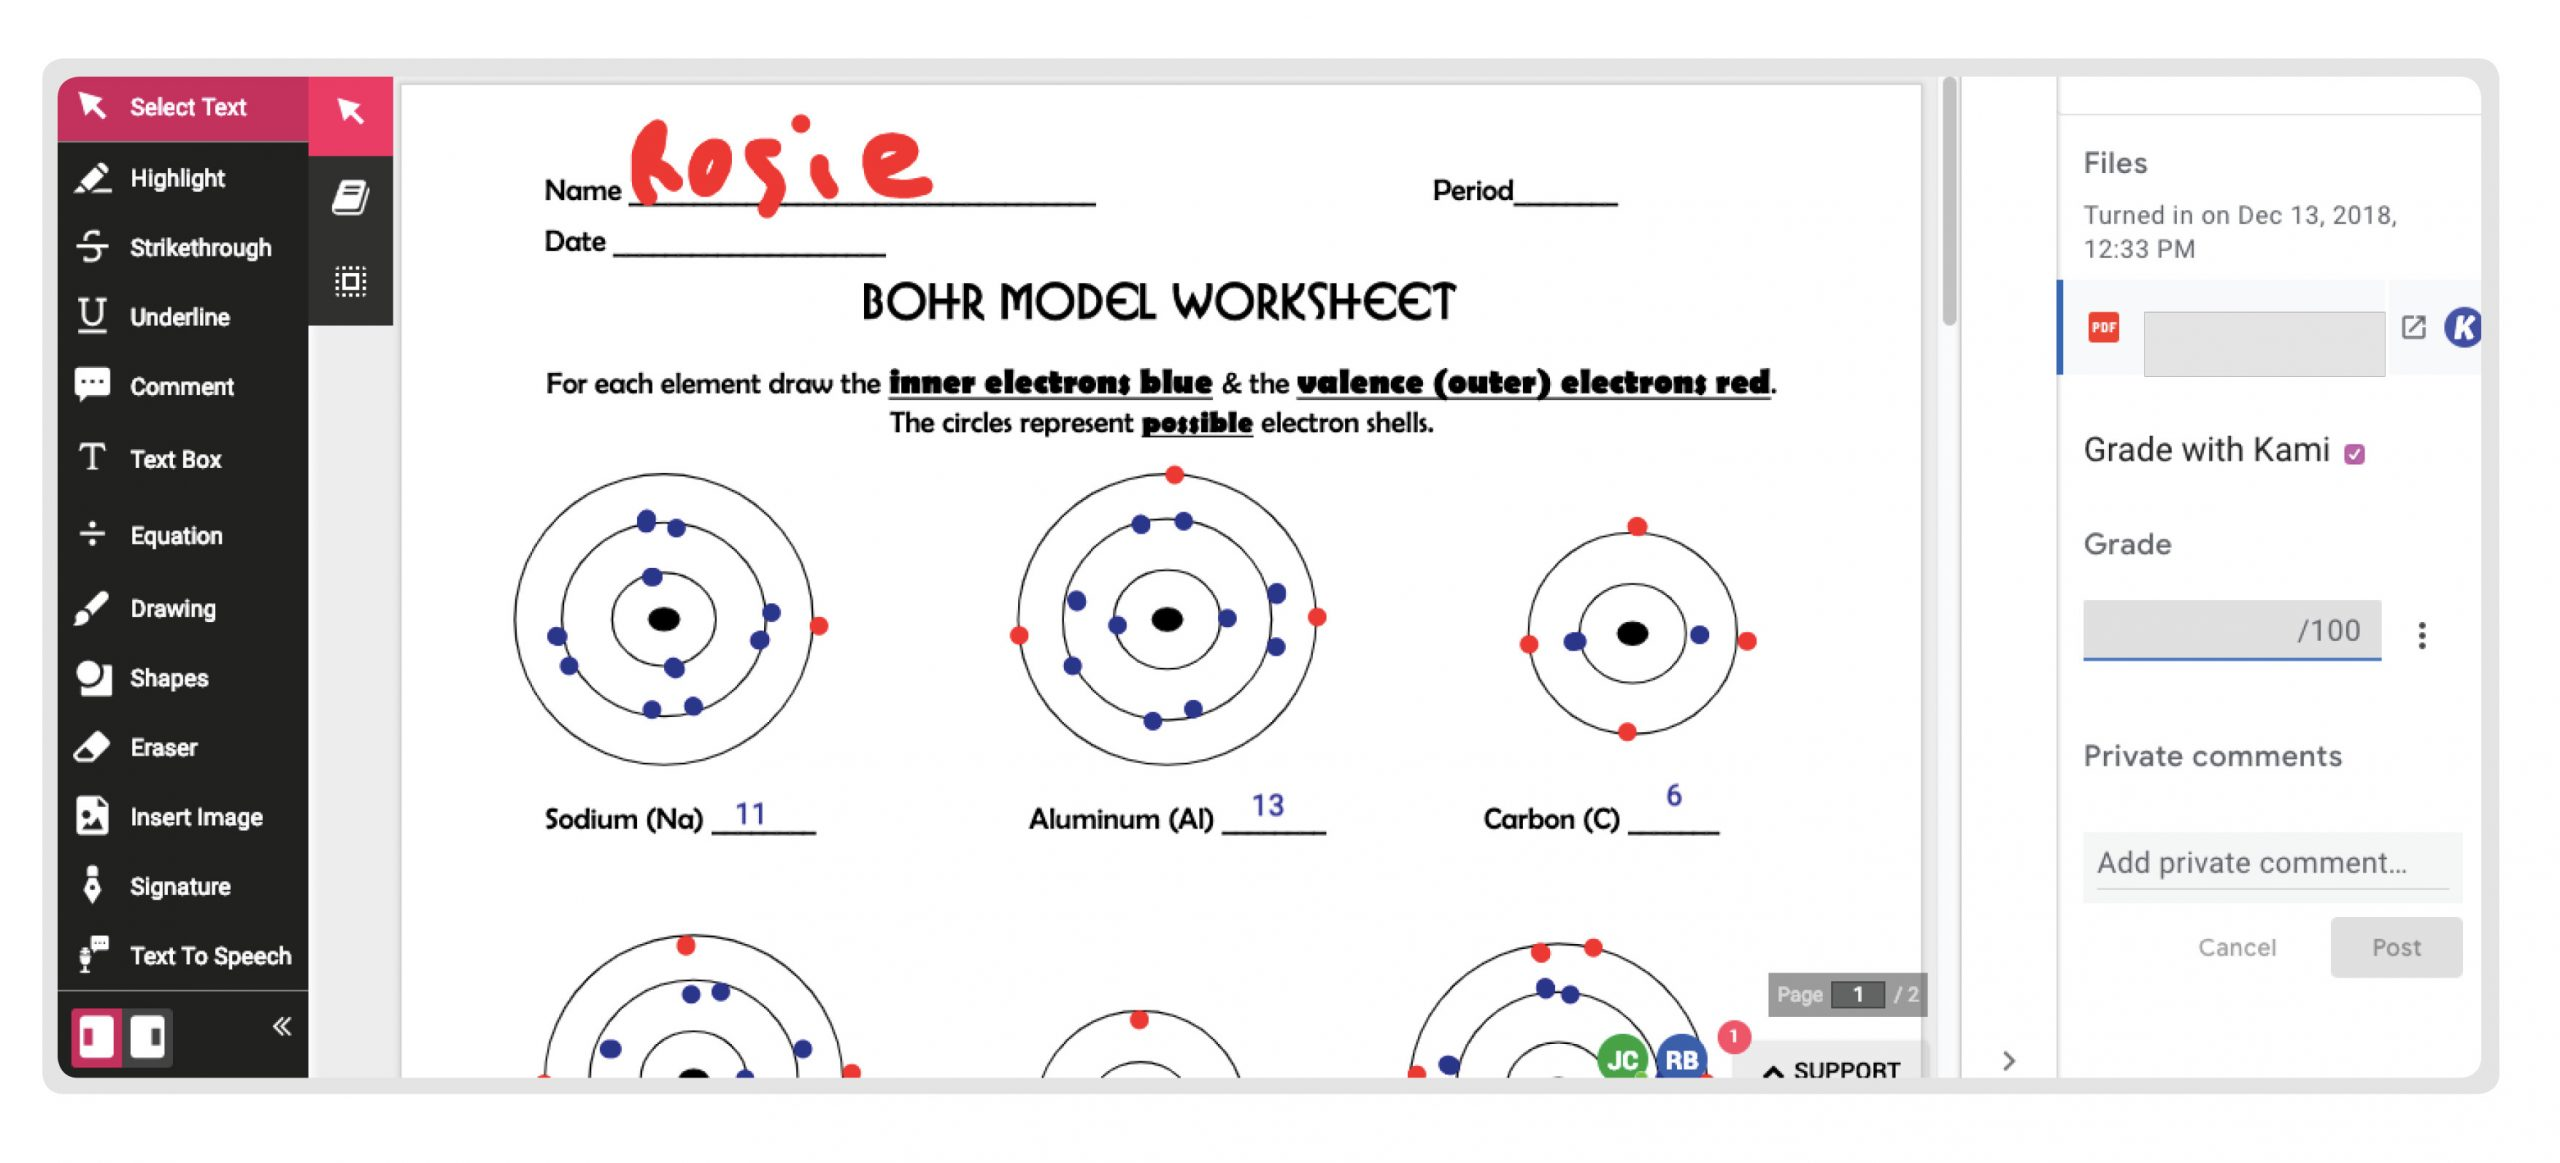 Bohr Model Worksheet Middle School Less Paper More Interactive with Kami 📒 – Kami Blog